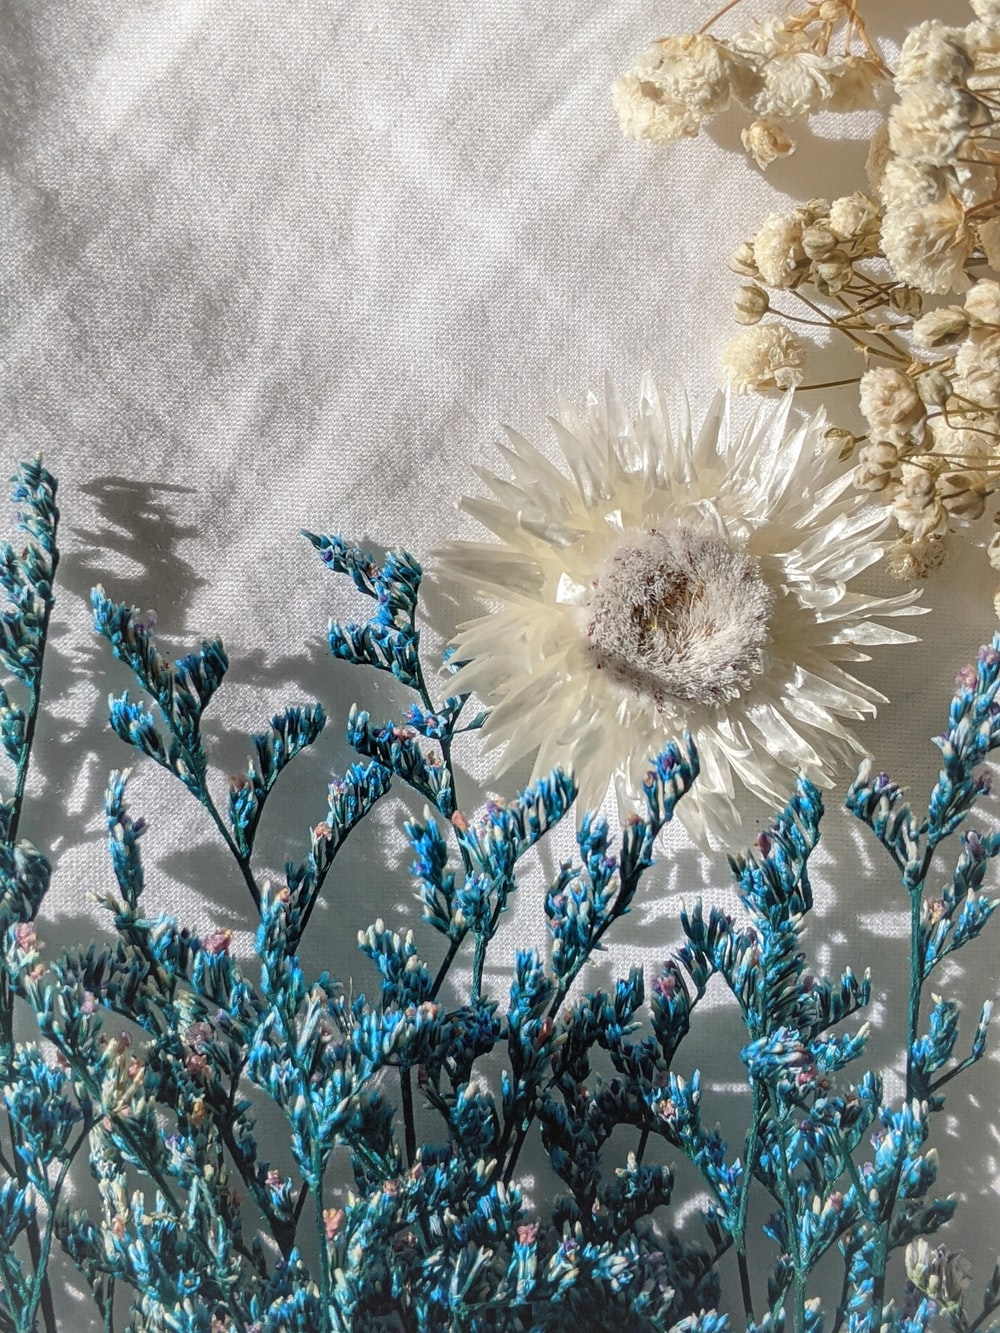 white and brown flowers on gray textile